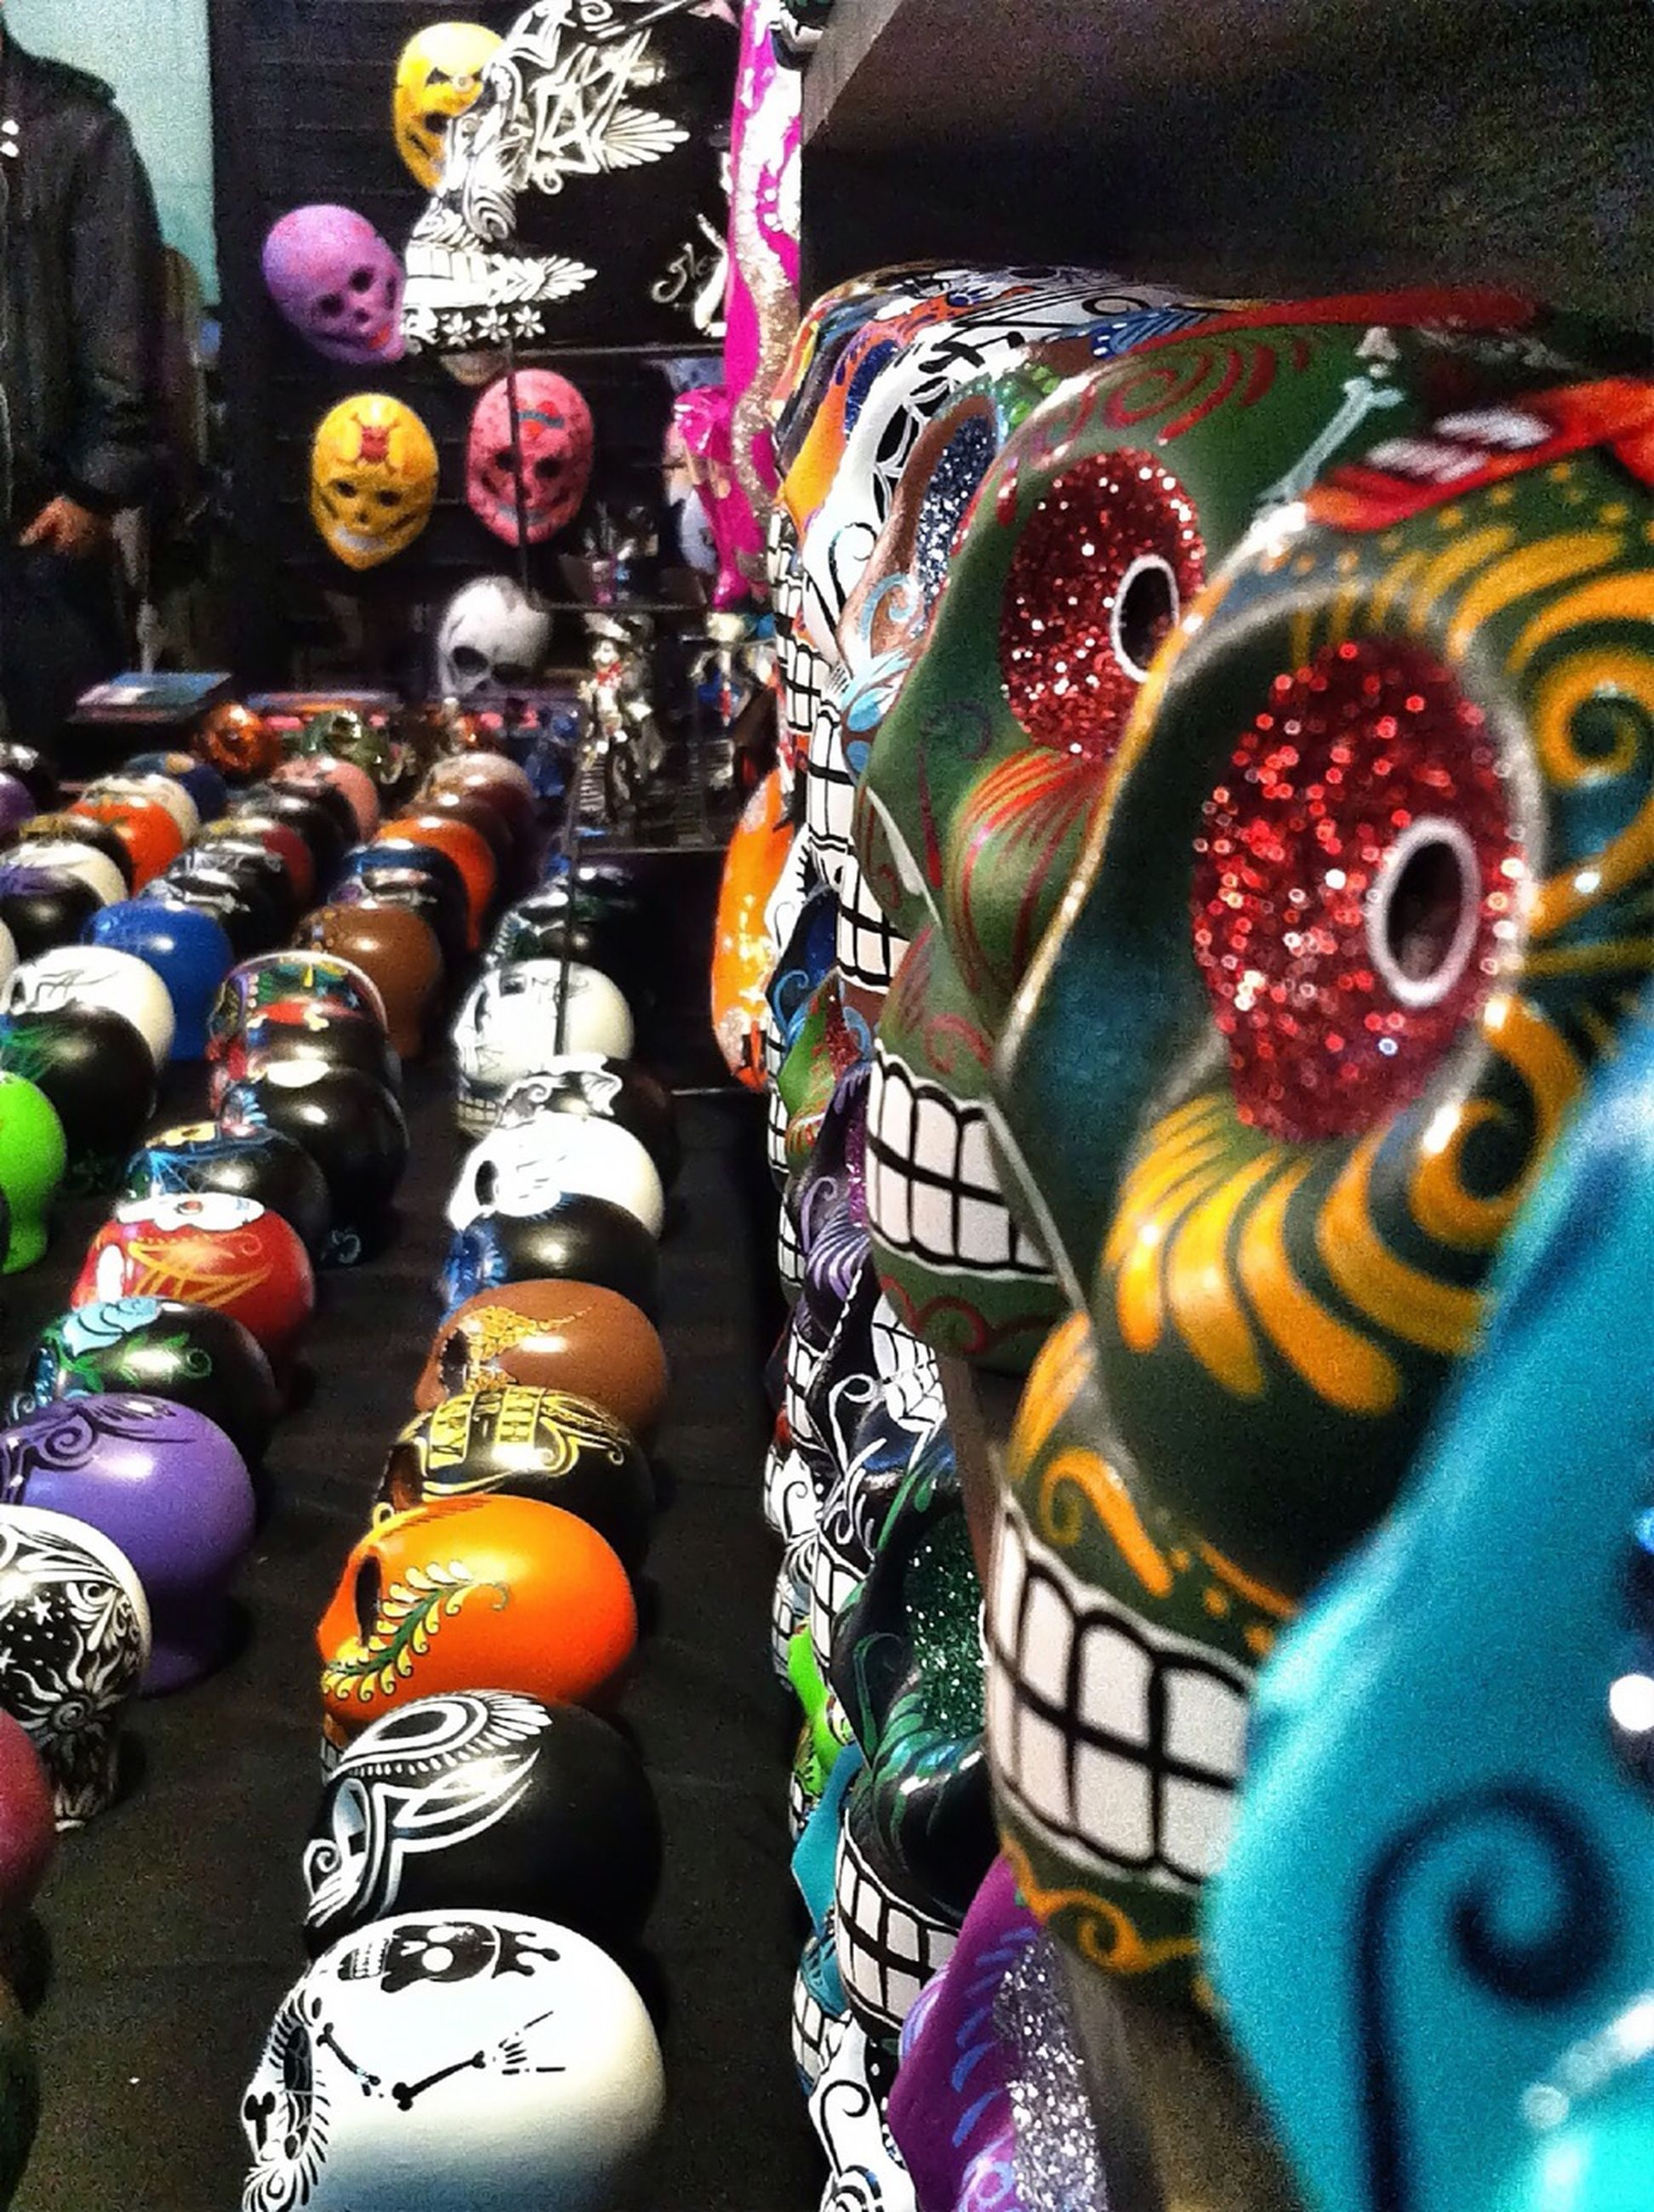 indoors, multi colored, for sale, retail, variation, choice, decoration, abundance, tradition, large group of objects, art and craft, celebration, market, cultures, market stall, creativity, high angle view, store, art, collection